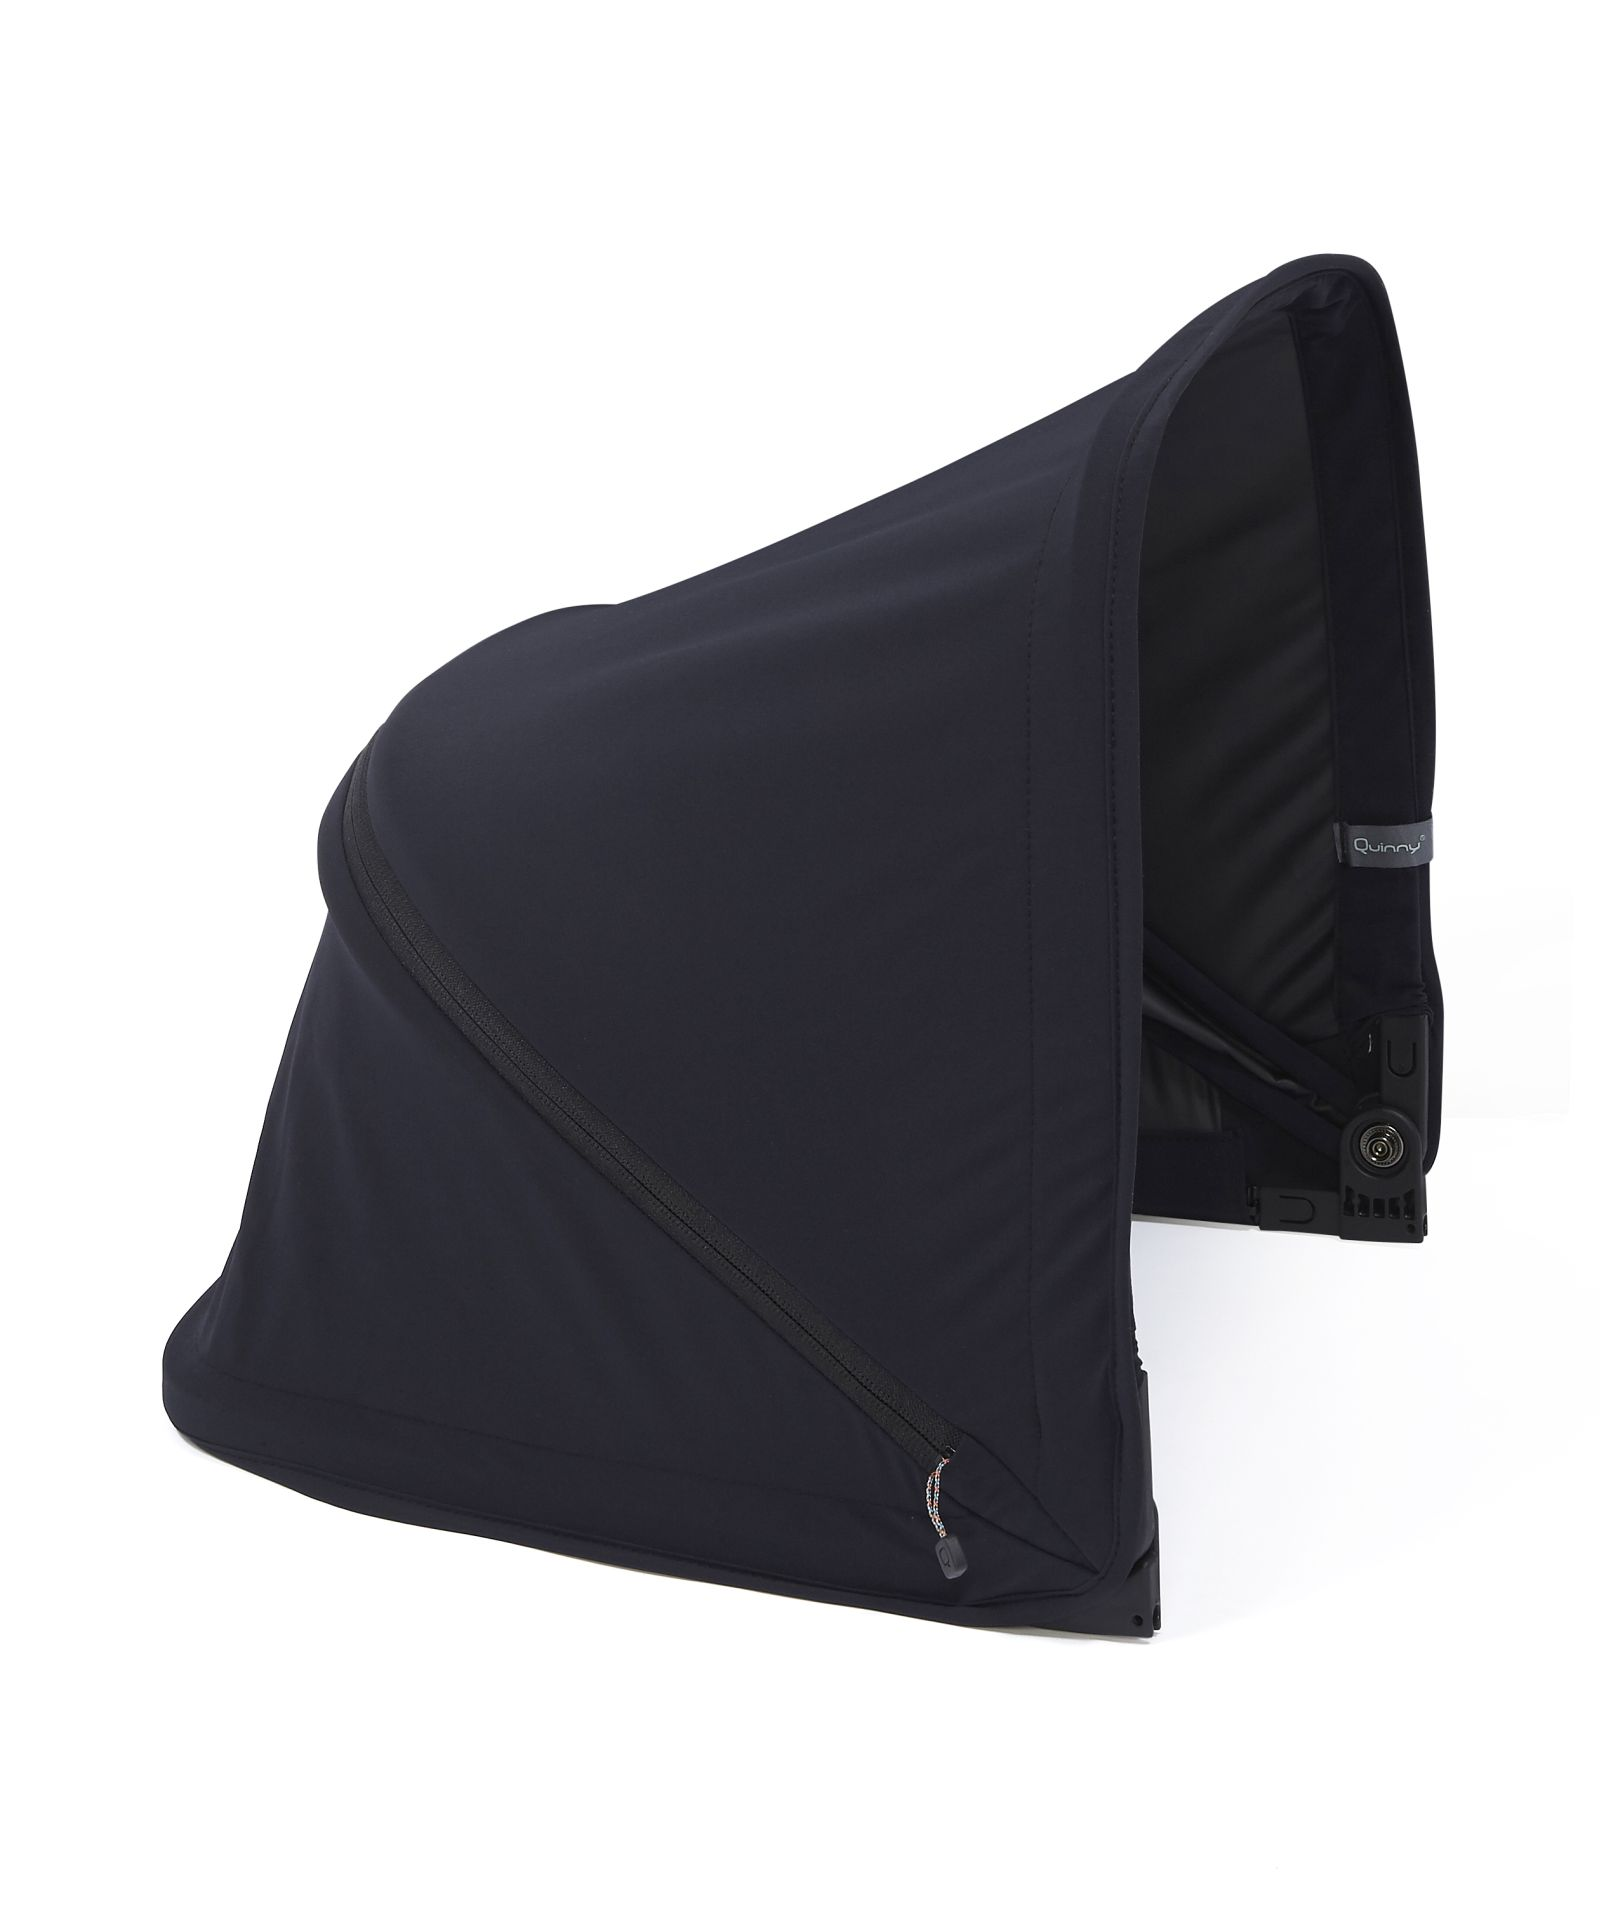 Quinny Zapp Sun Canopy Black 2018 - large image 1 ...  sc 1 st  Baby products online store - worldwide shipping & Quinny Zapp Sun Canopy 2018 Black - Buy at kidsroom   Strollers ...